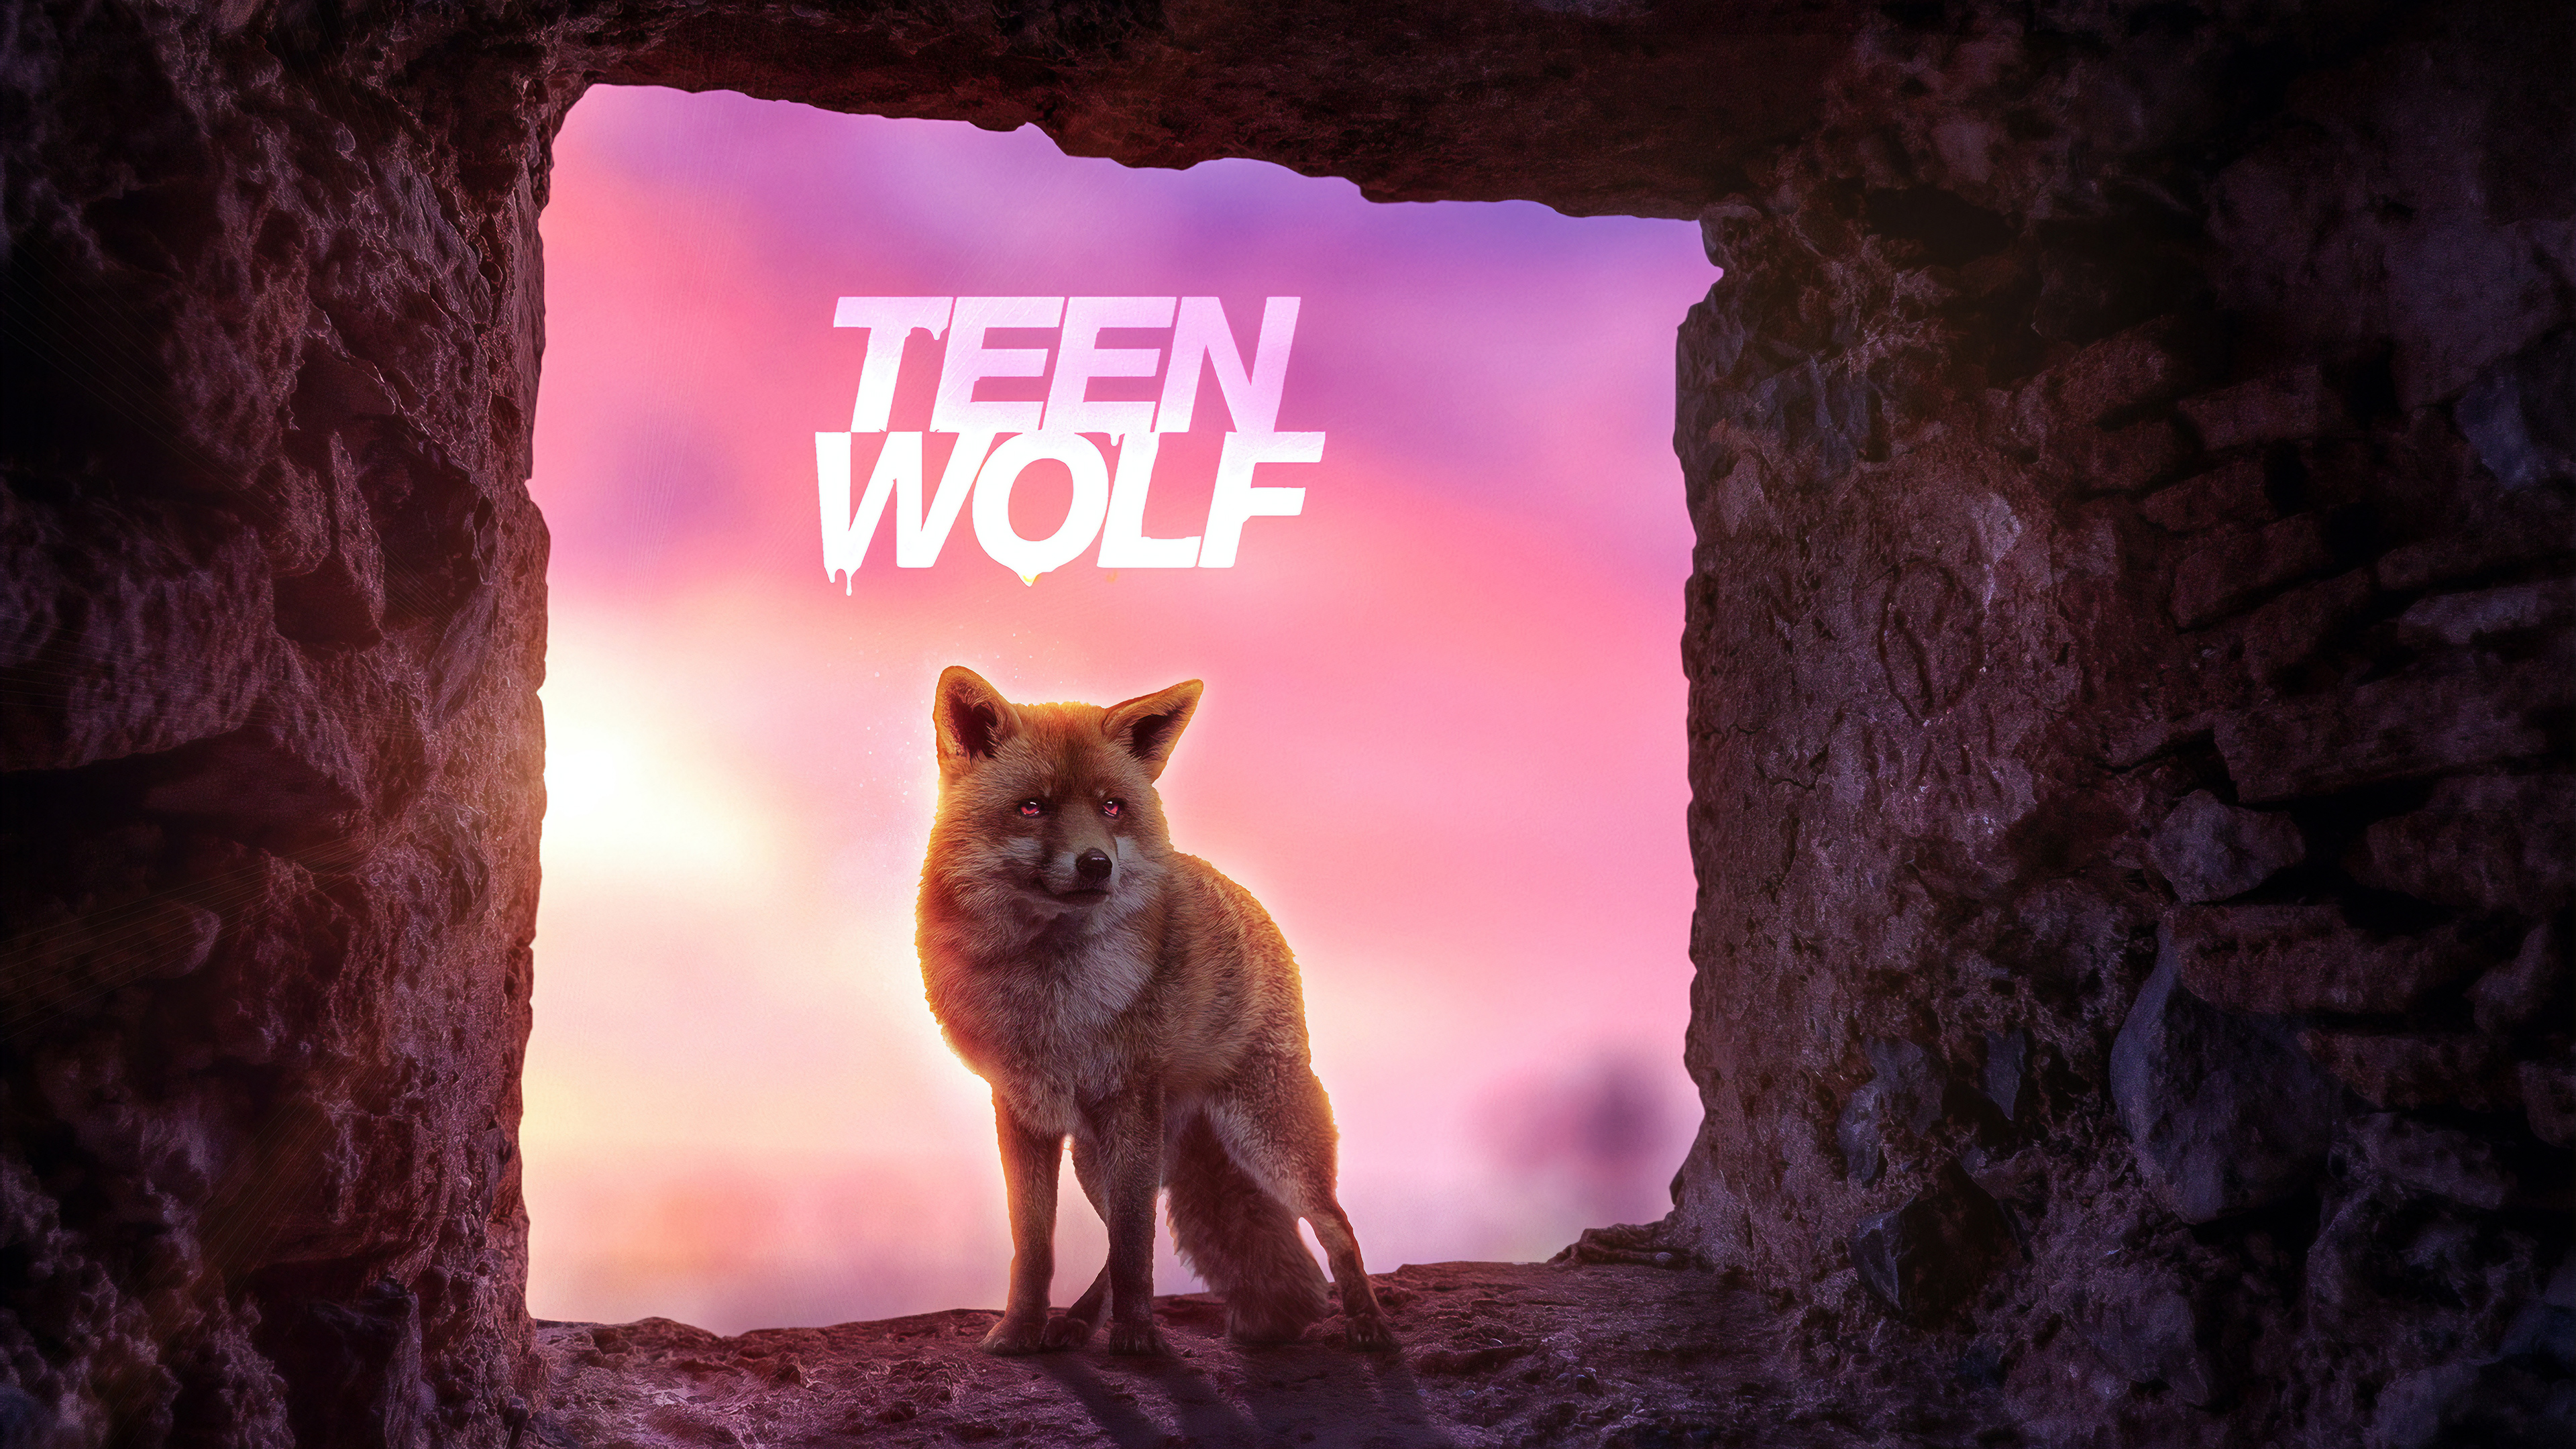 Teen Wolf Hd Tv Shows 4k Wallpapers Images Backgrounds